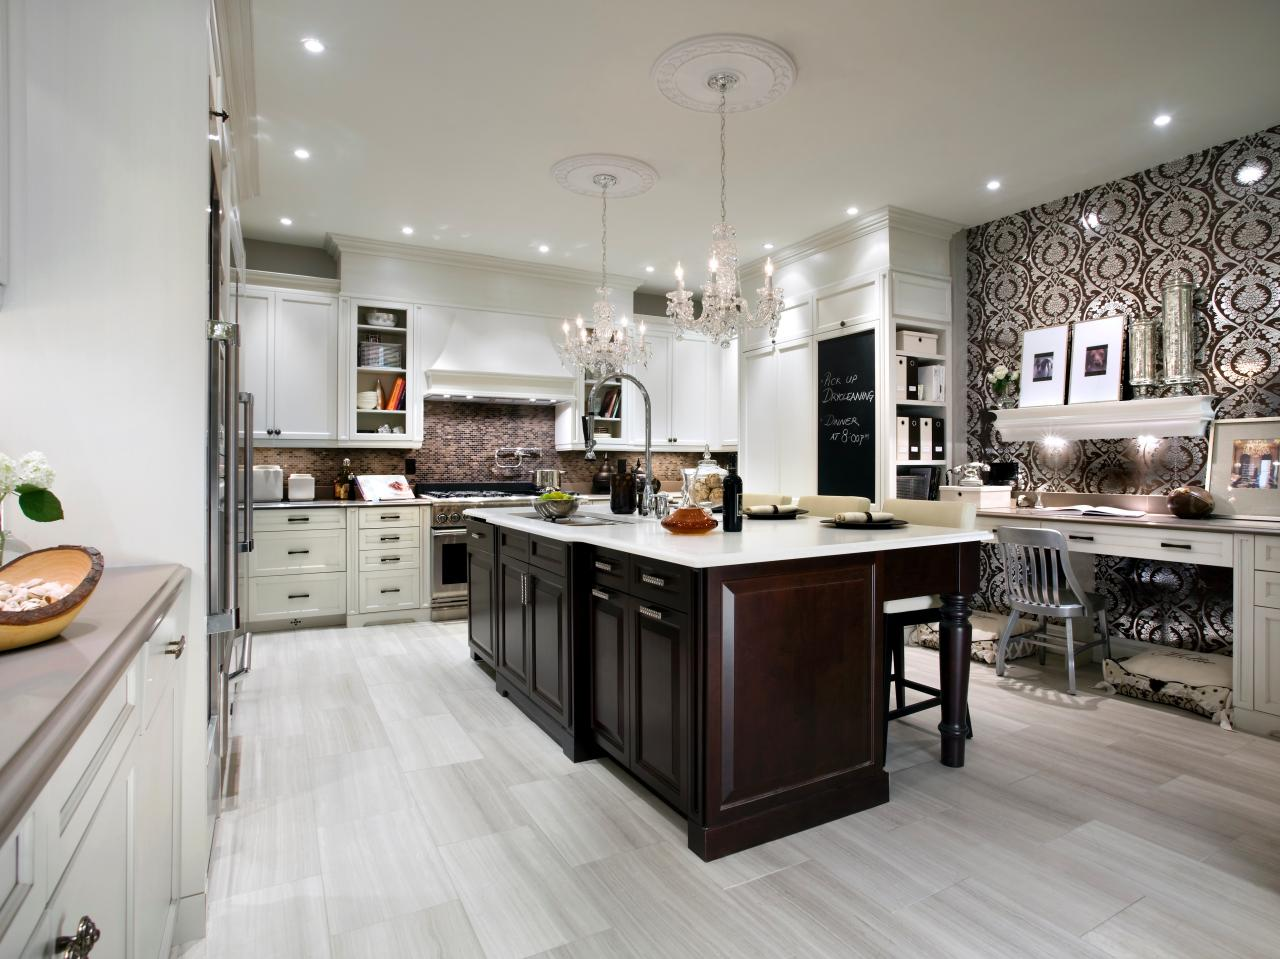 candice olson kitchens pictures photo - 5